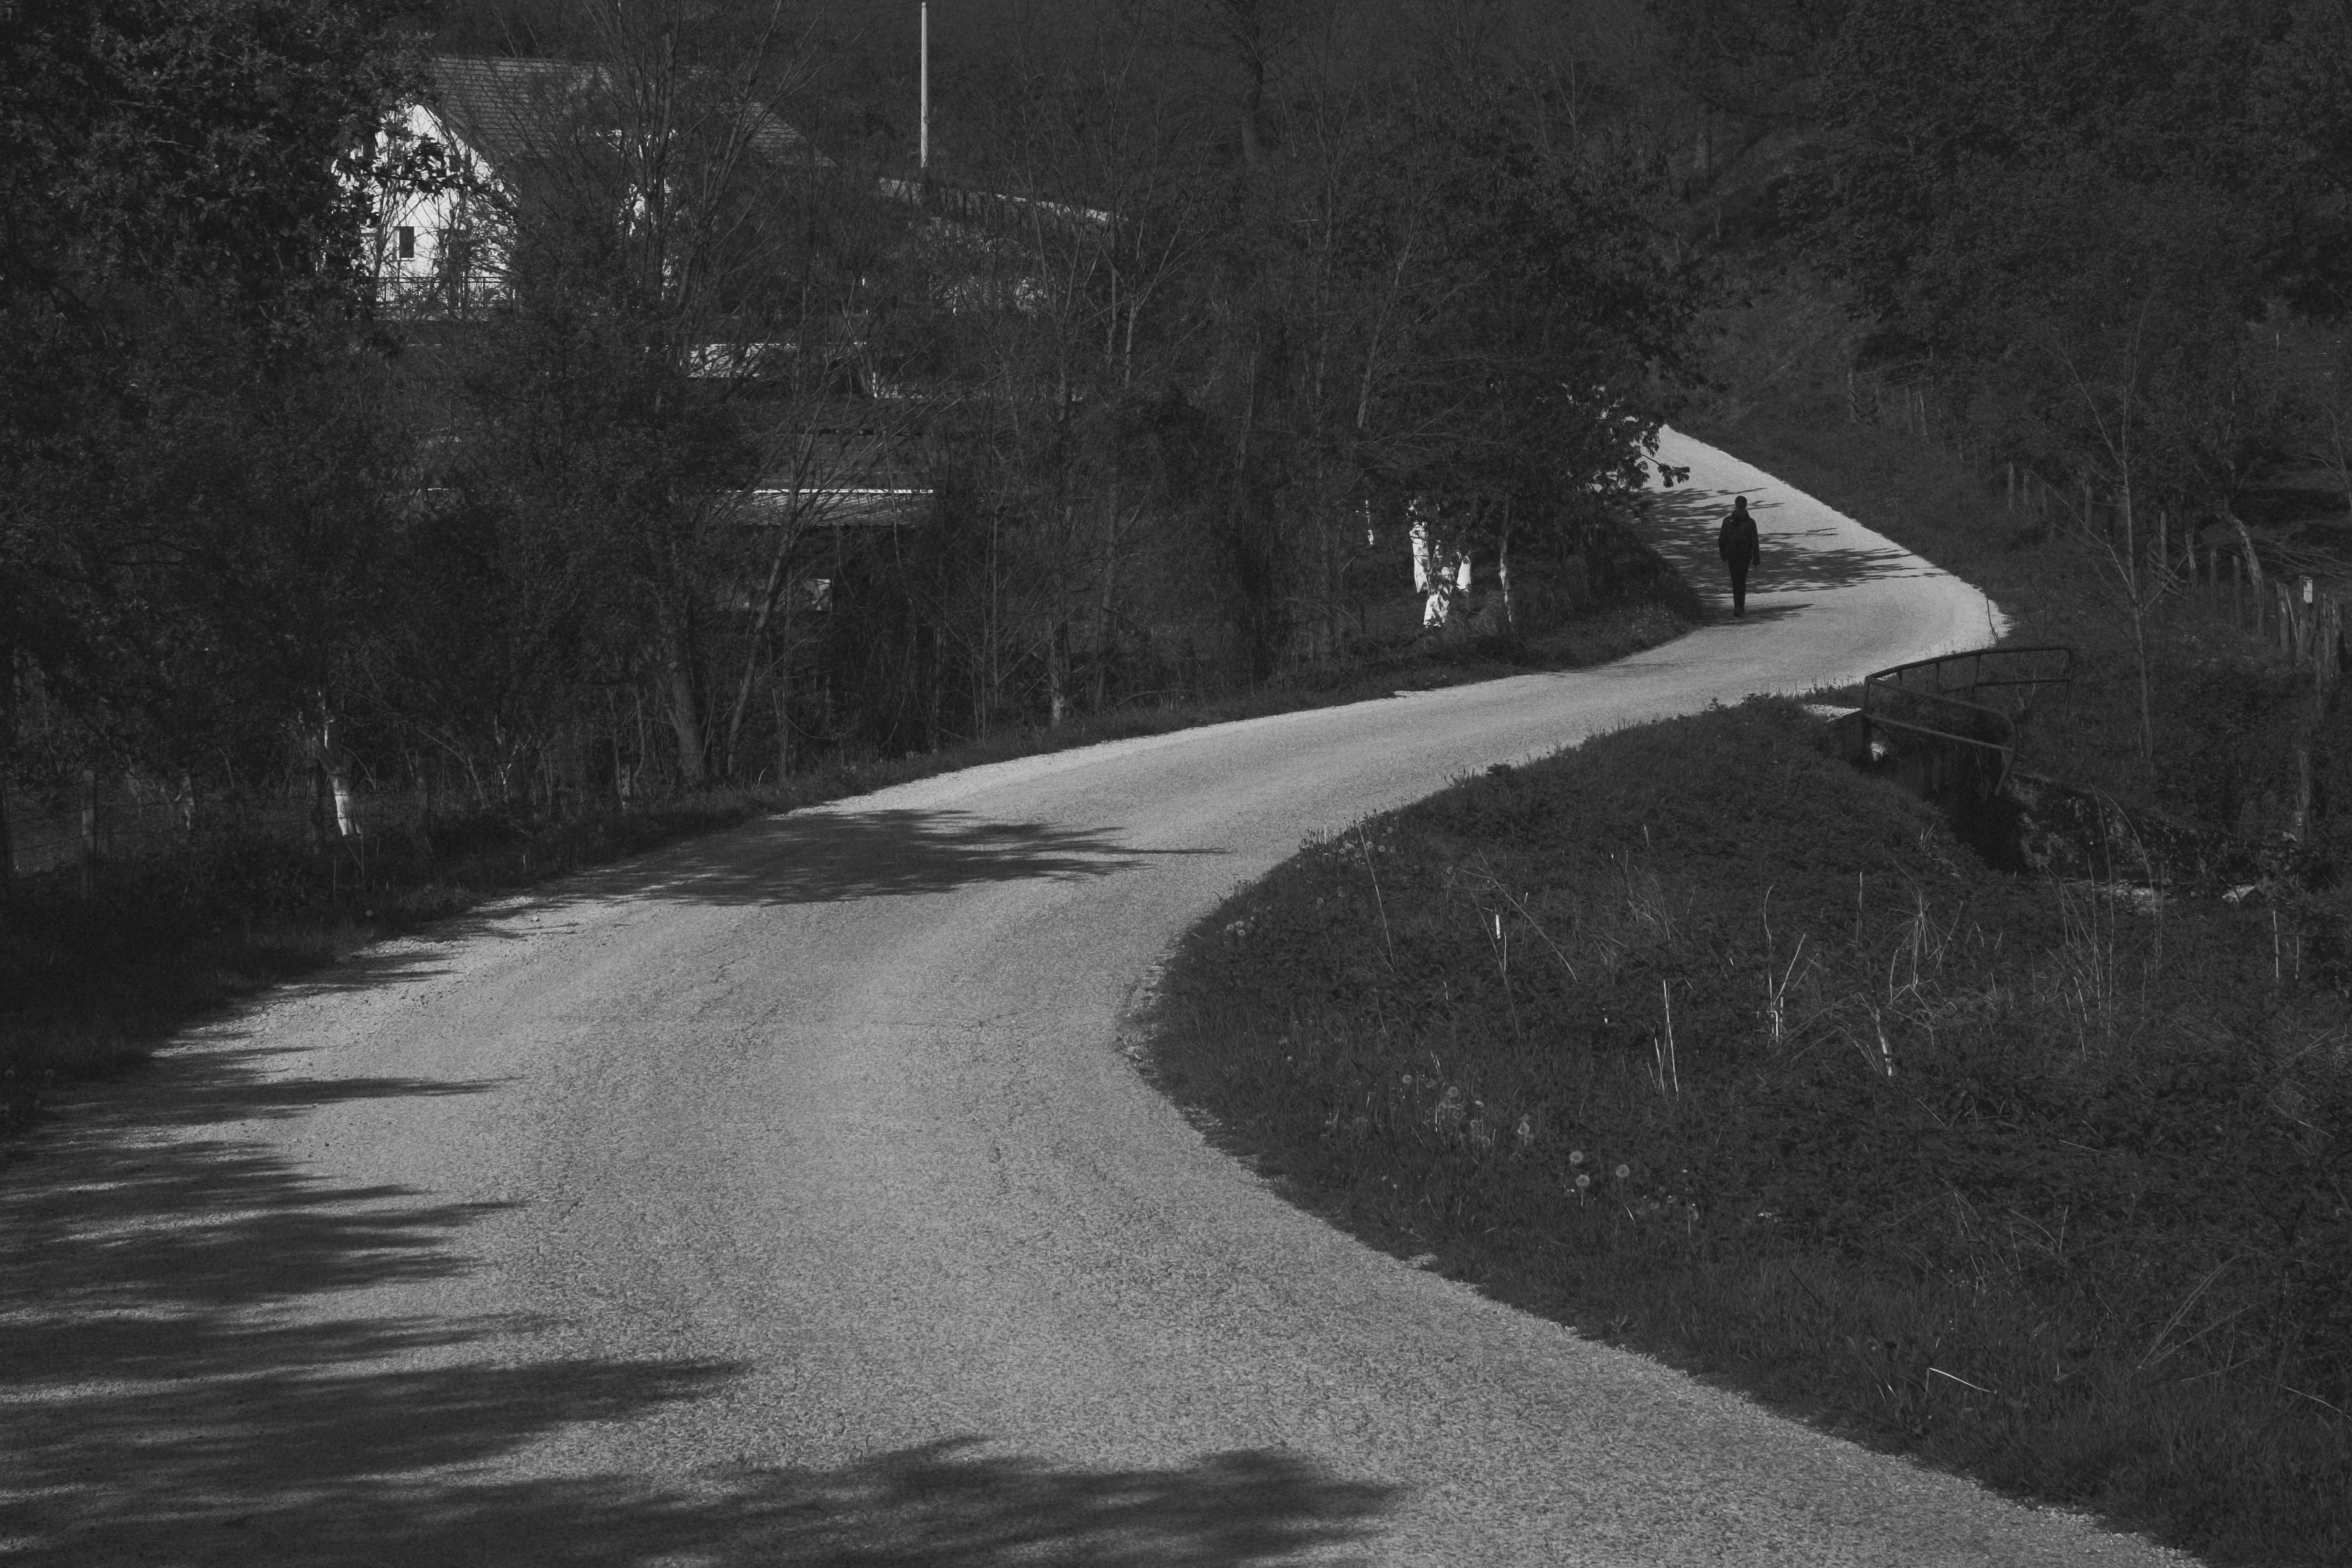 A road winds from the centre of the frame away into the distance. Trees crowd in on either side of the road. A house is visible behind the trees. There is a person on the road, just before it curves out of sight. The image is black and white.